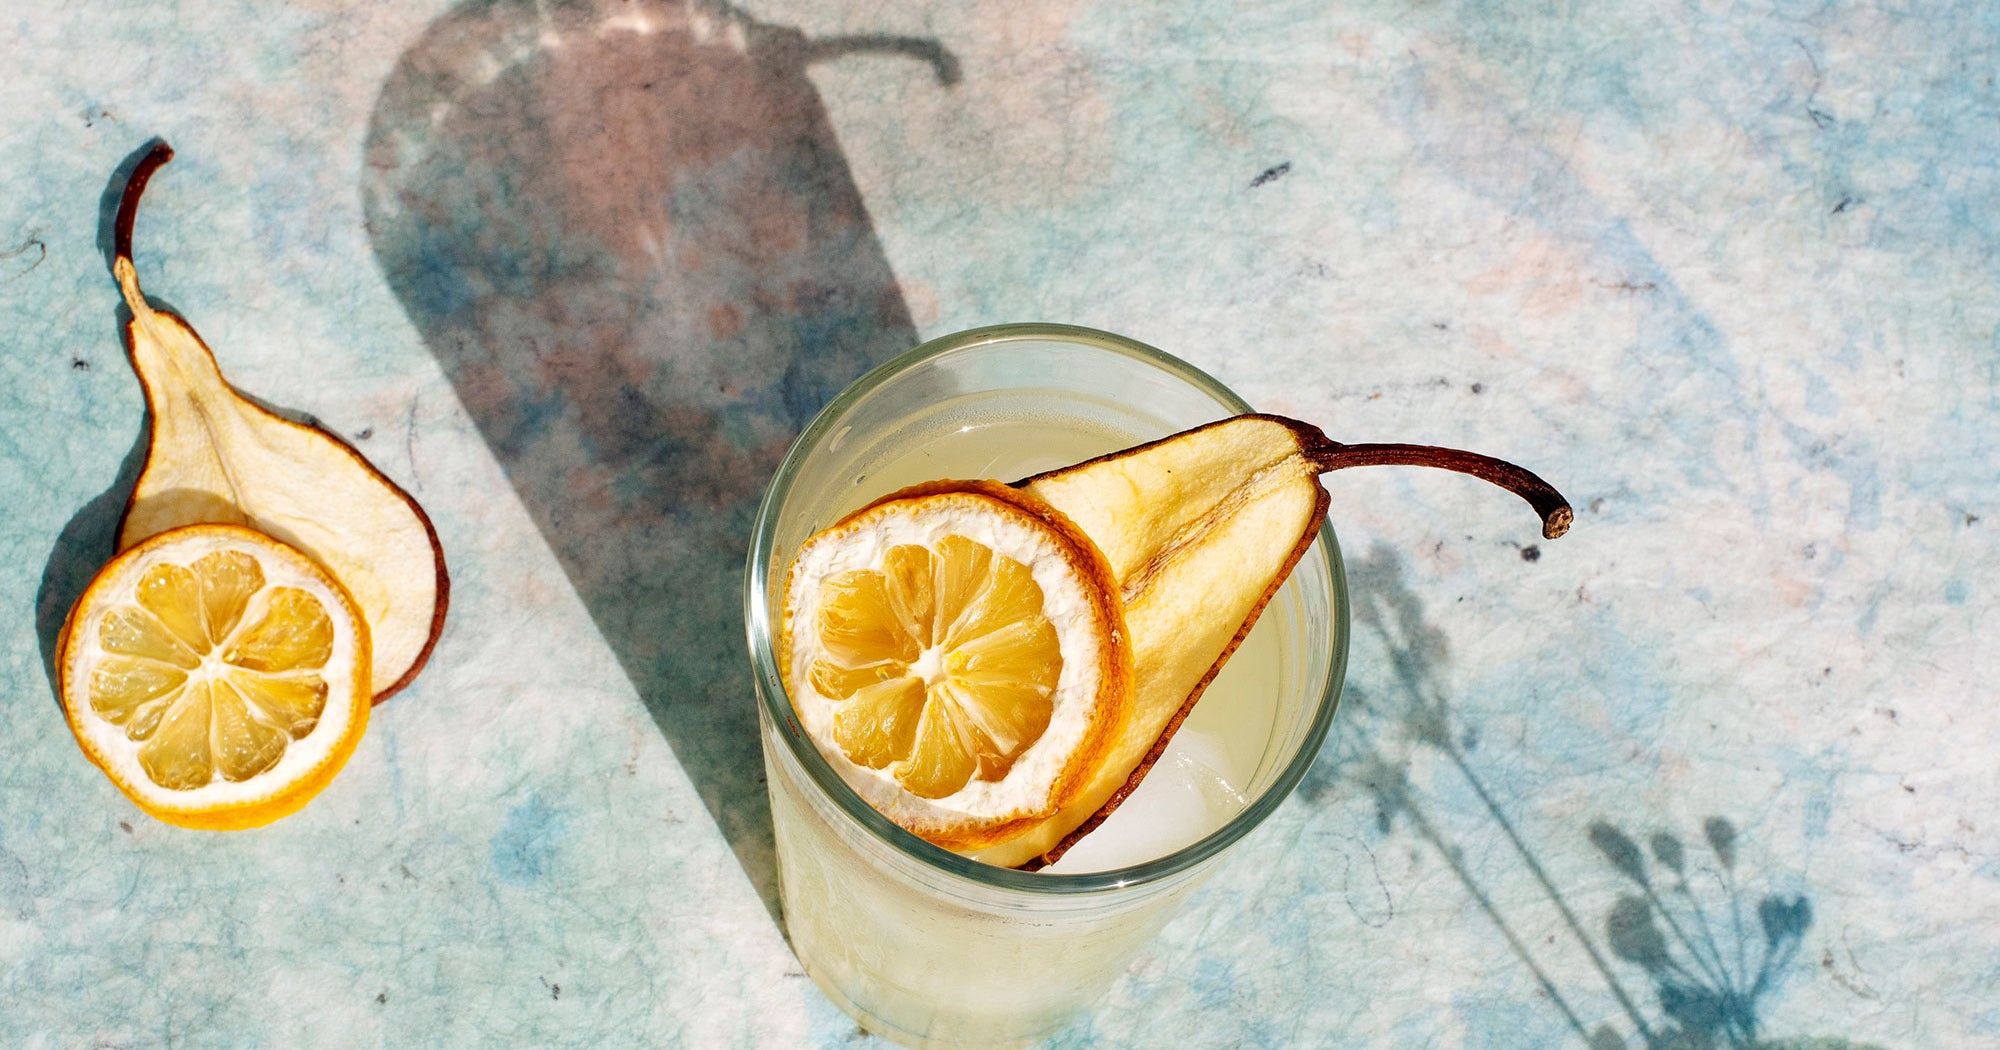 6 Fun Non-Alcoholic Drinks To Have On A Night Out – From People Who Don't Drink